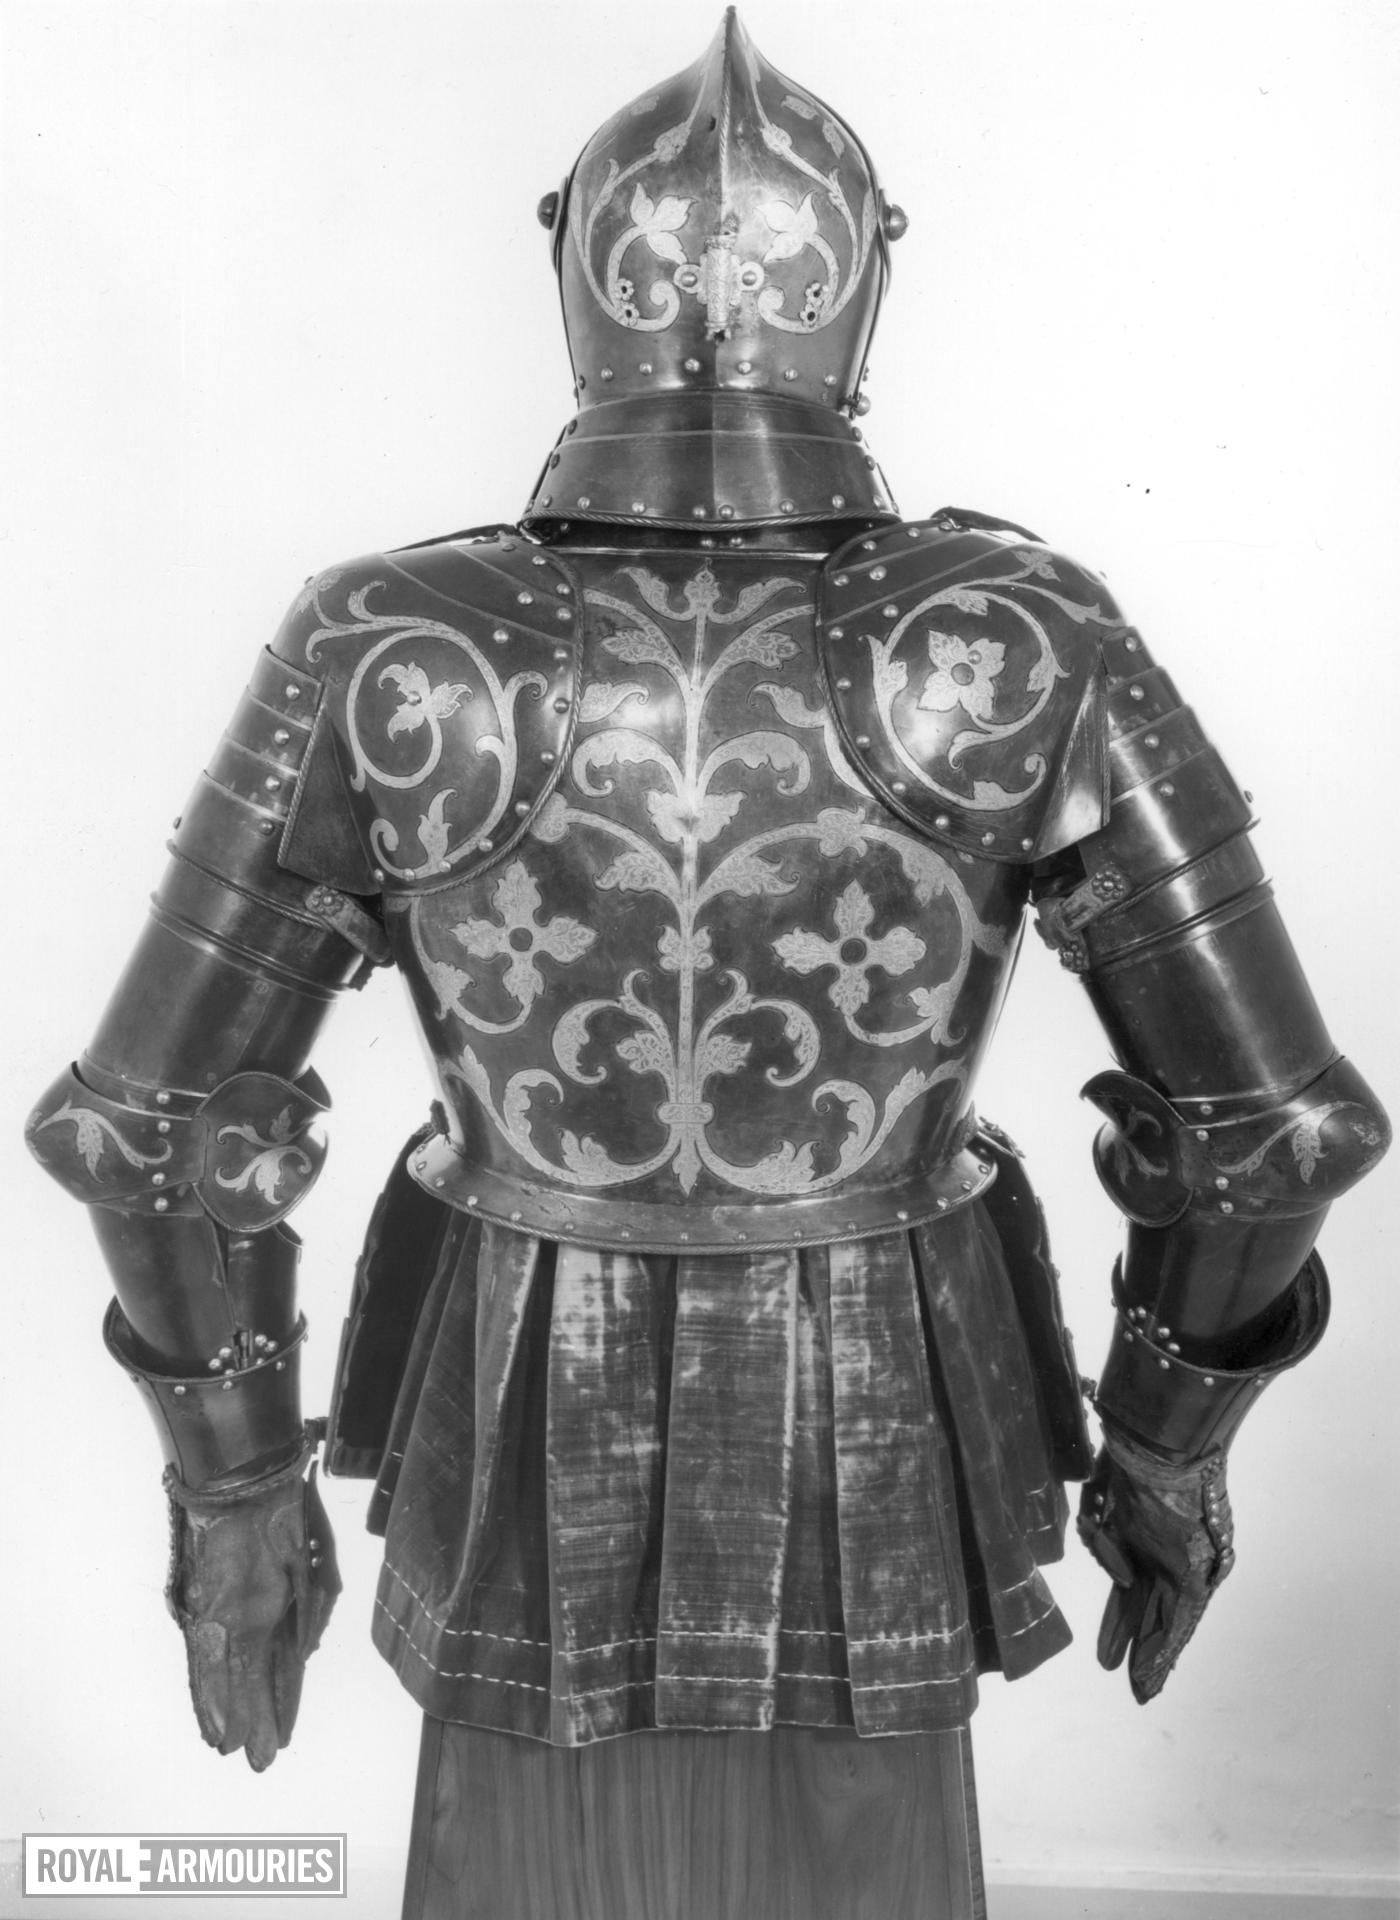 16th century english weapons essay Free armor papers, essays, and research papers  16th century english  weapons during the 16th century england and much of europe found itself in  turmoil.